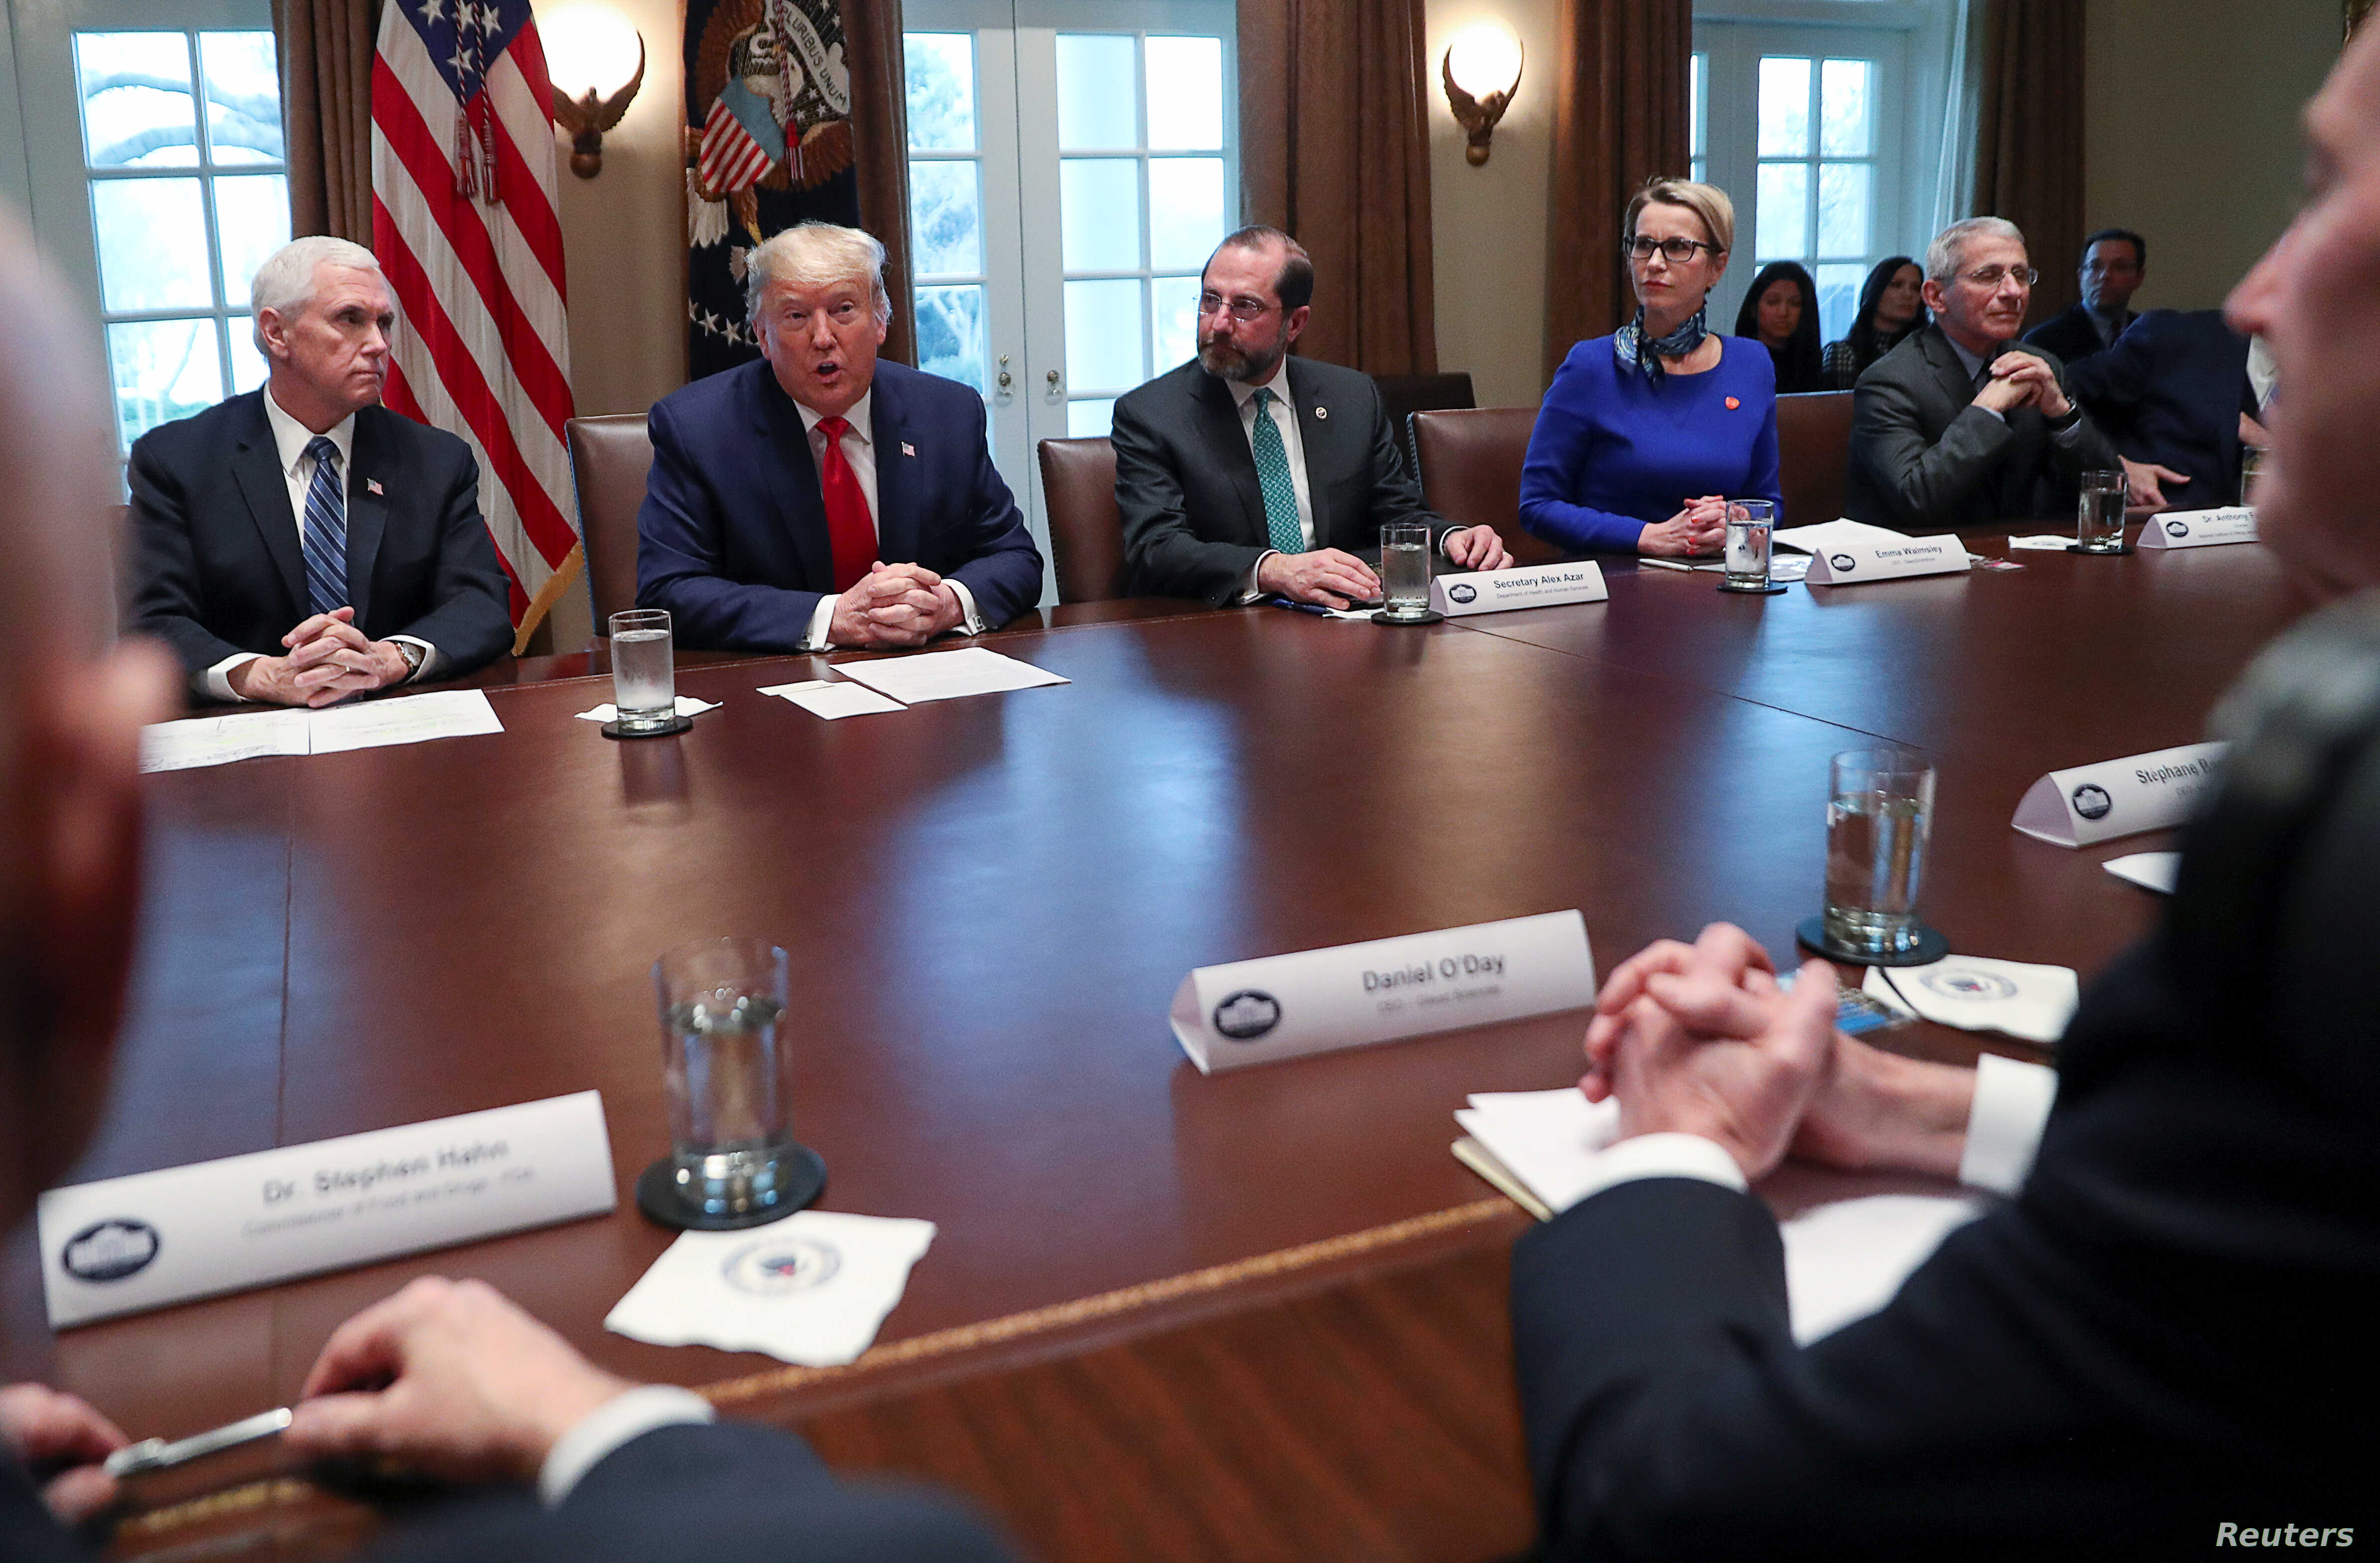 U.S. President Donald Trump, Vice President Mike Pence and Health, Human Services Secretary Alex Azar and members of the coronavirus task force meet with pharmaceutical executives in the Cabinet Room of the White House in Washington, March 2, 2020.